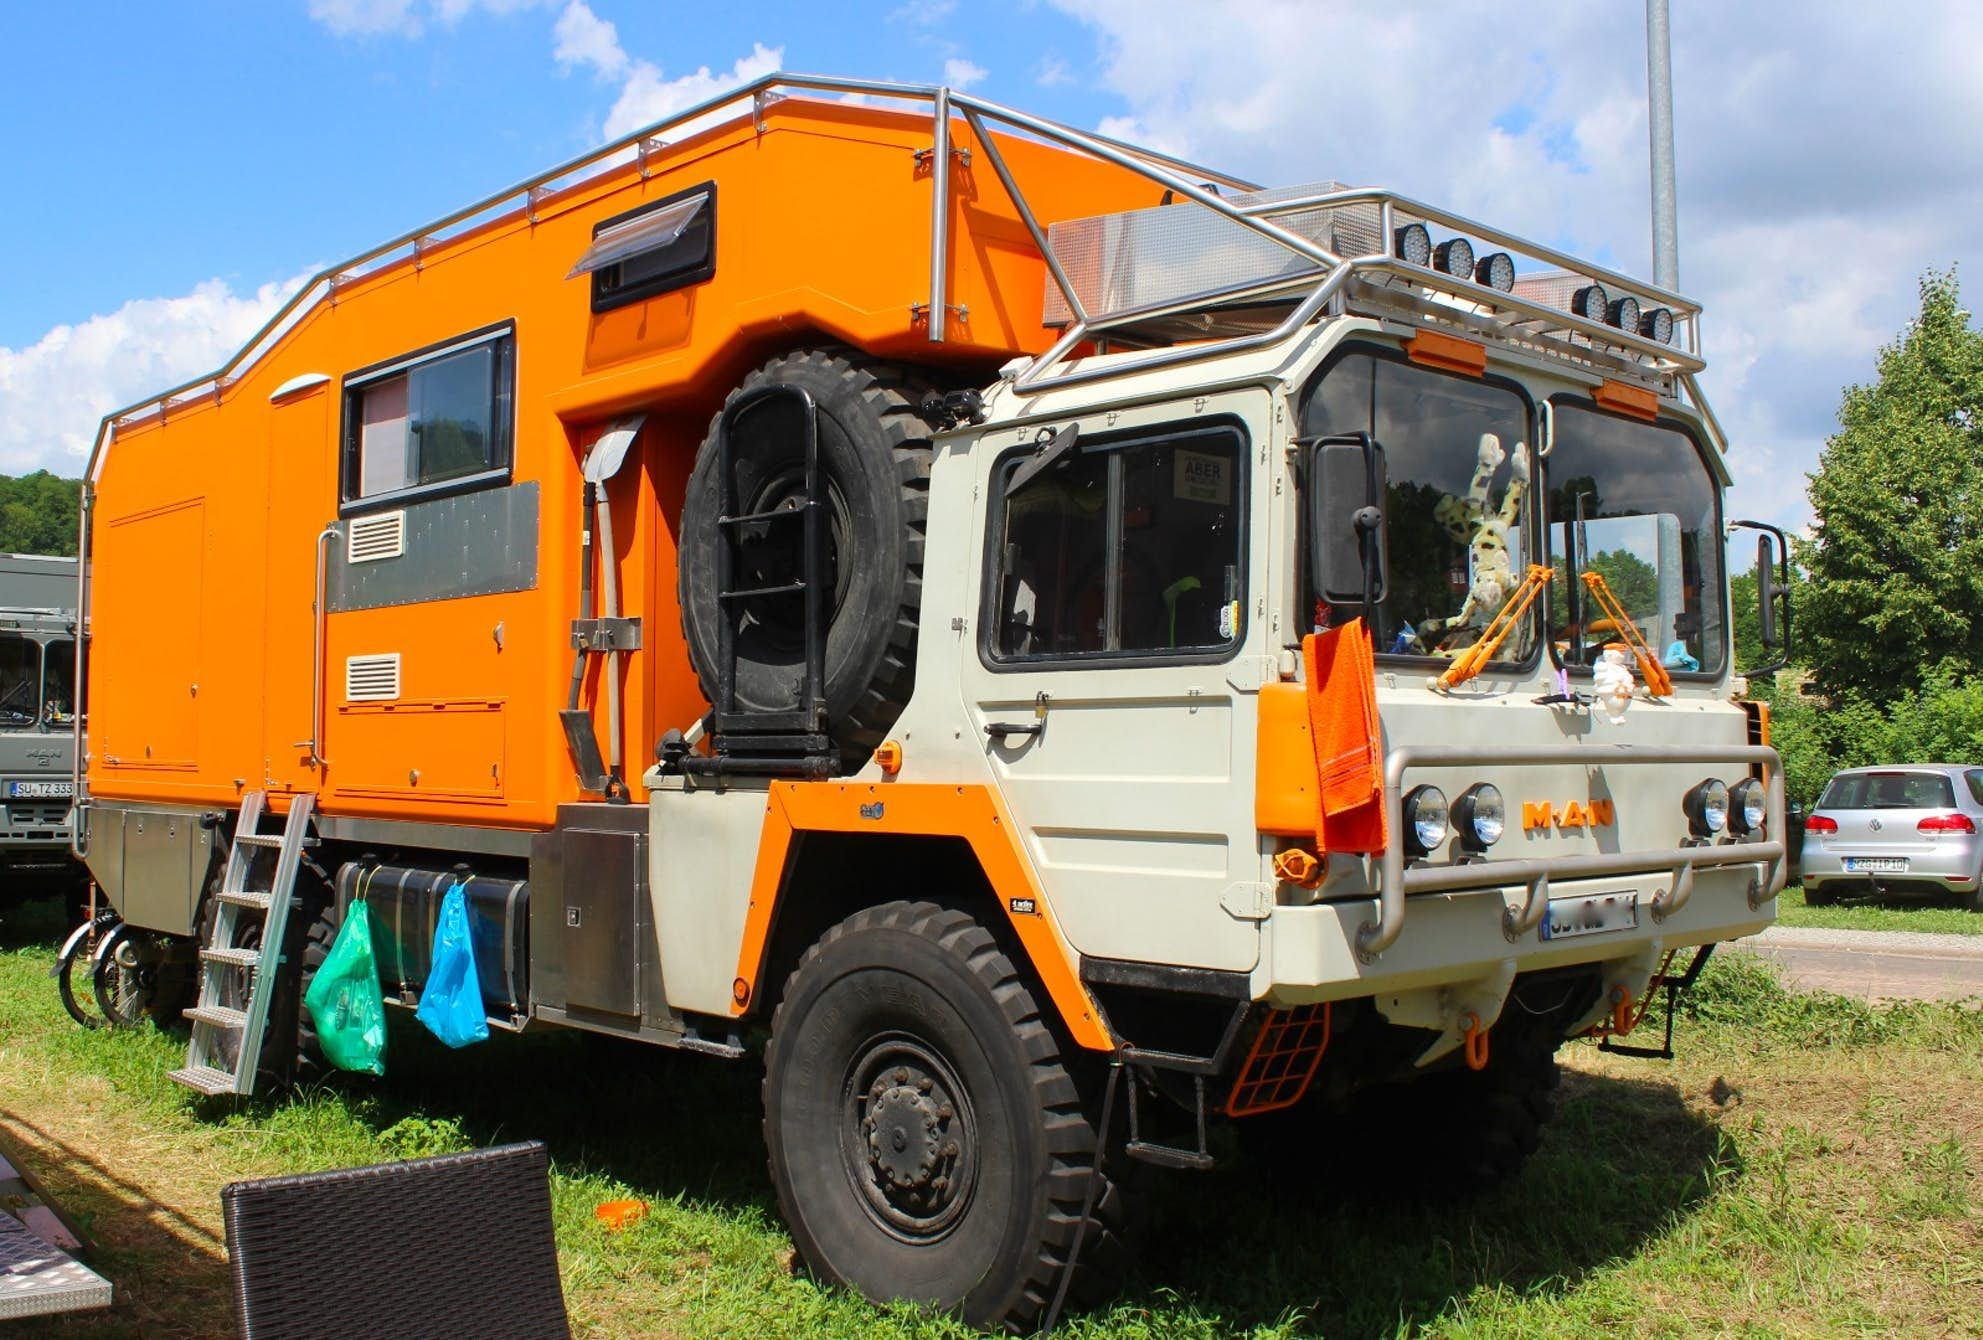 In Photos Adrift In A Sea Of Monstrous Camping Machines At The World S Biggest Cross Country Vehicle Expo Big Cross Camping Recreational Vehicles